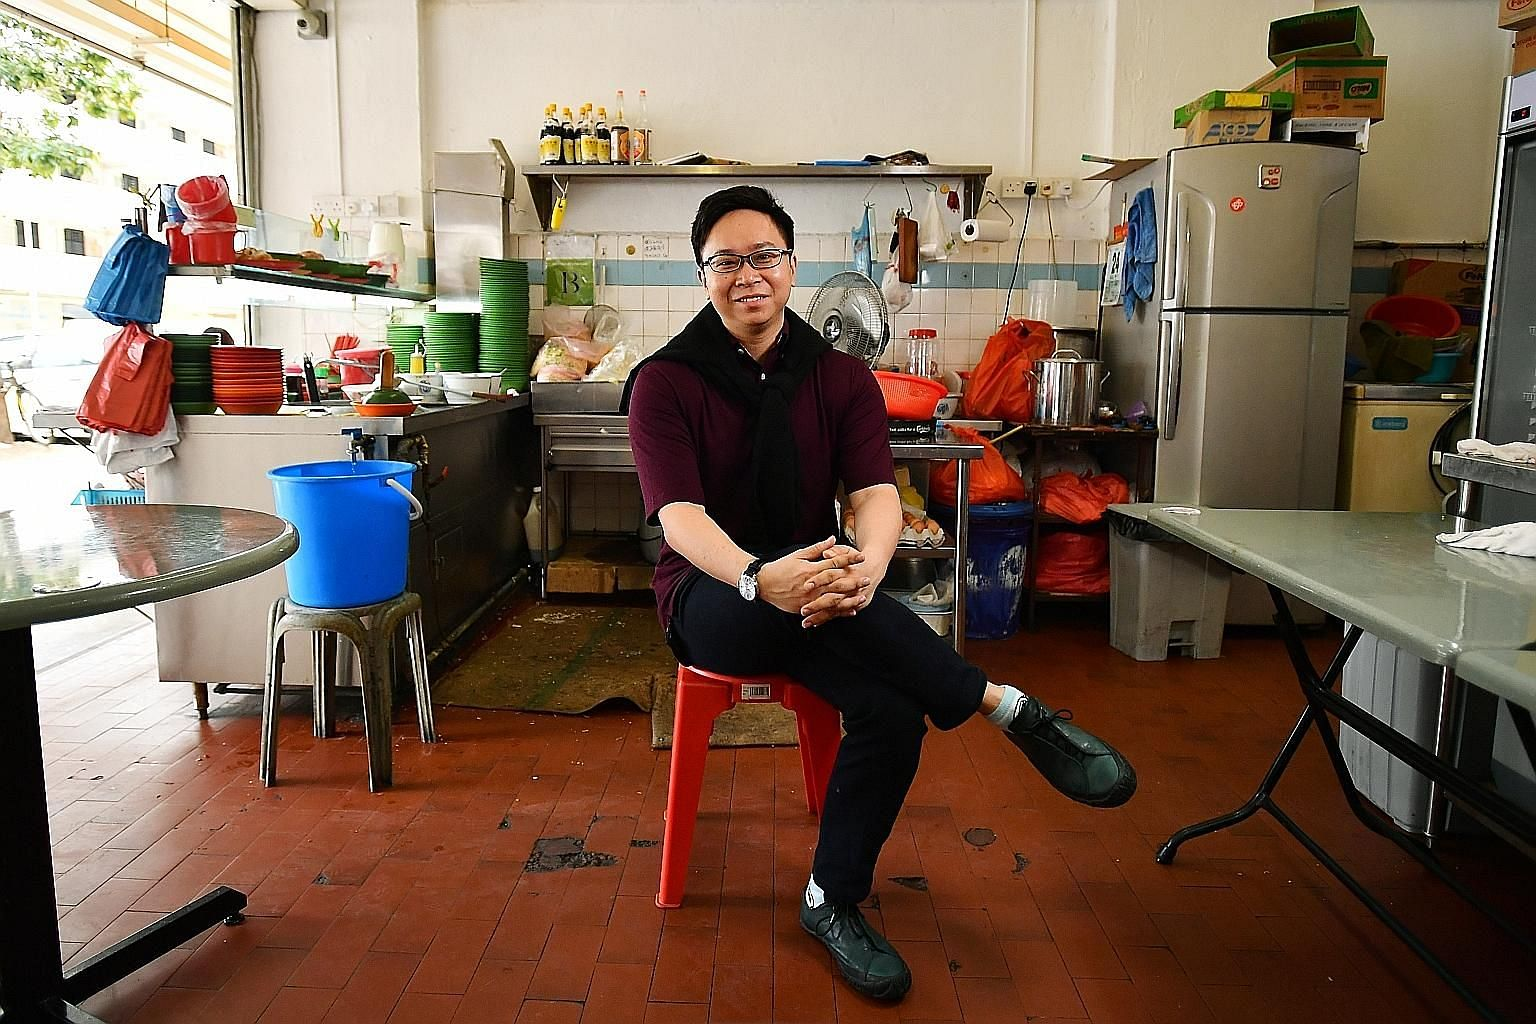 Seng Hong coffee shop in Bukit Merah, now known as Hollywood Bistro, is a pit stop for conductor Wong Kah Chun. His arts project with children, Project Infinitude, is based at the nearby Enabling Village.